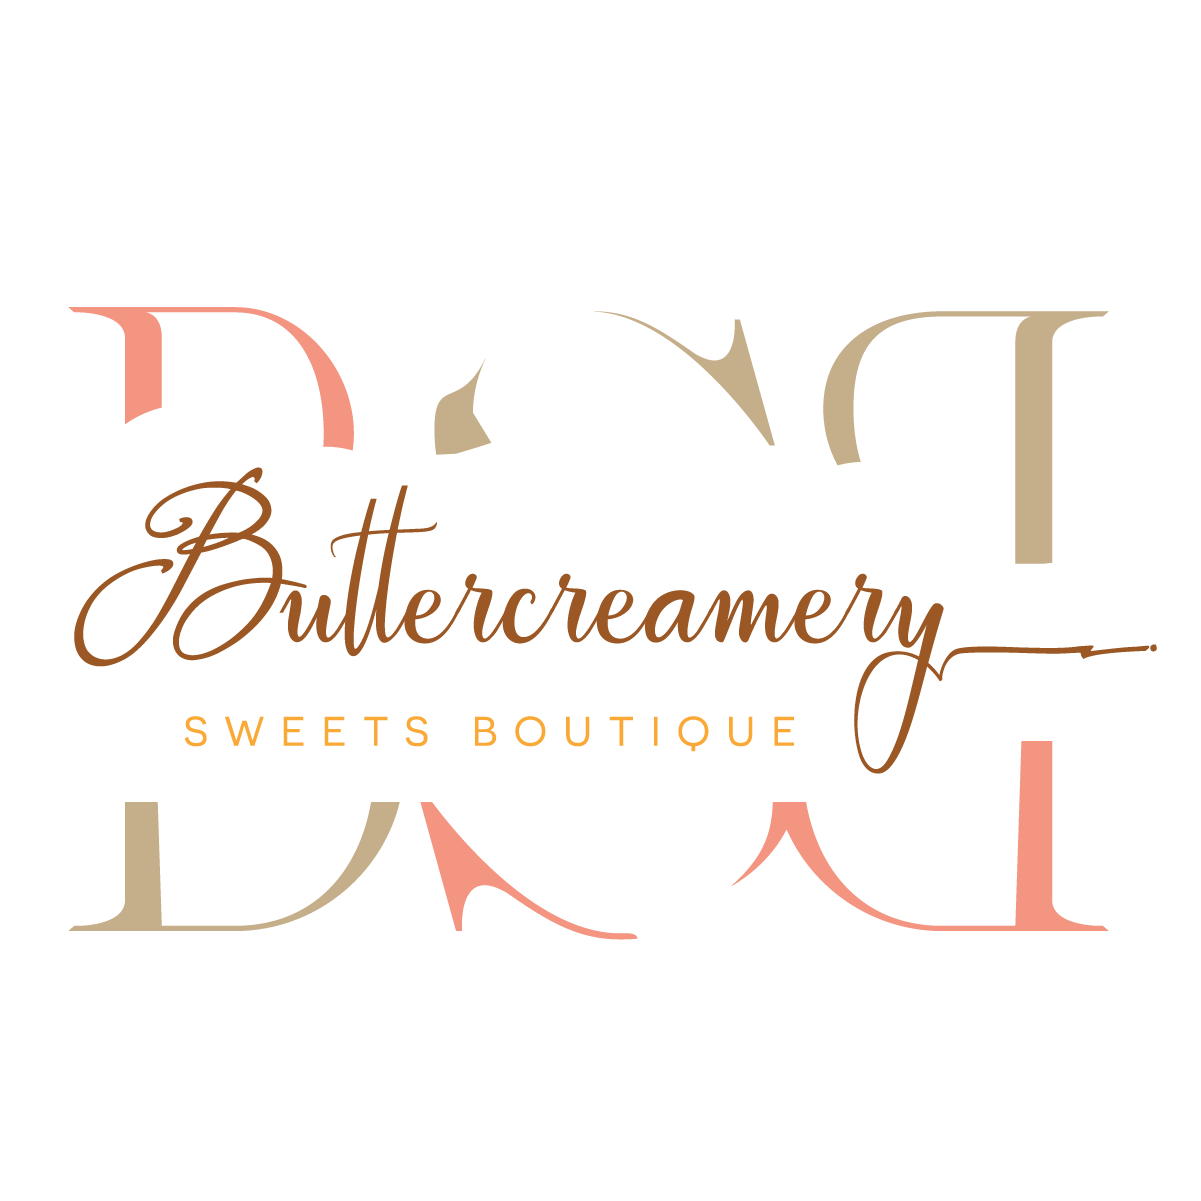 The Buttercreamery Sweets Boutique